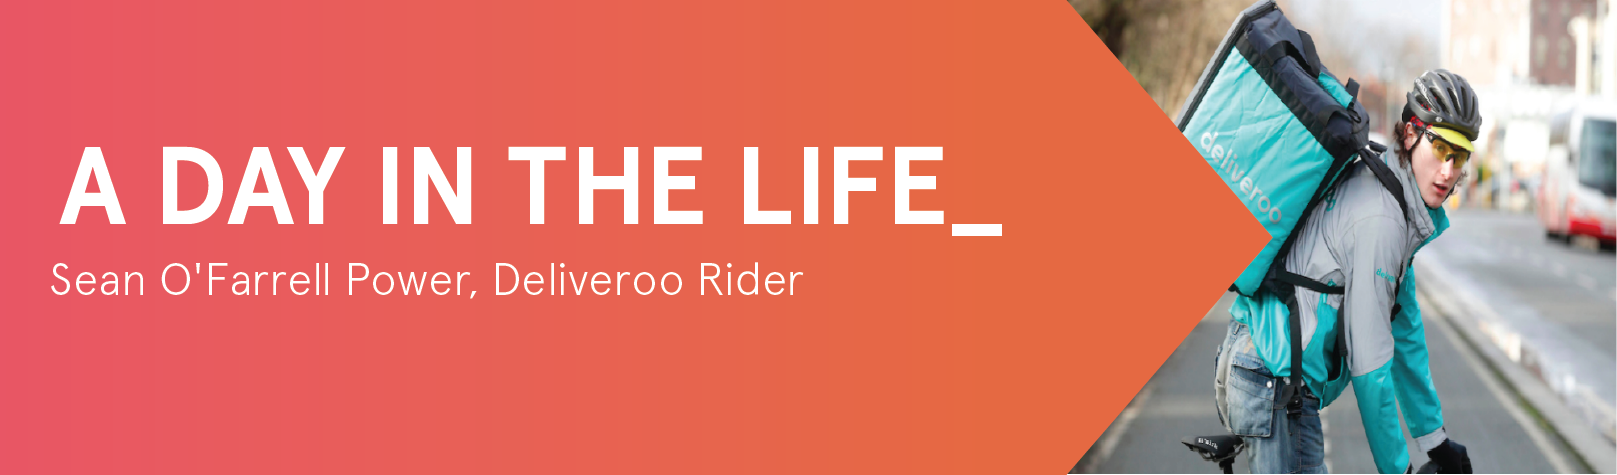 A Day In The Life of Deliveroo Rider Sean O'Farrell Power